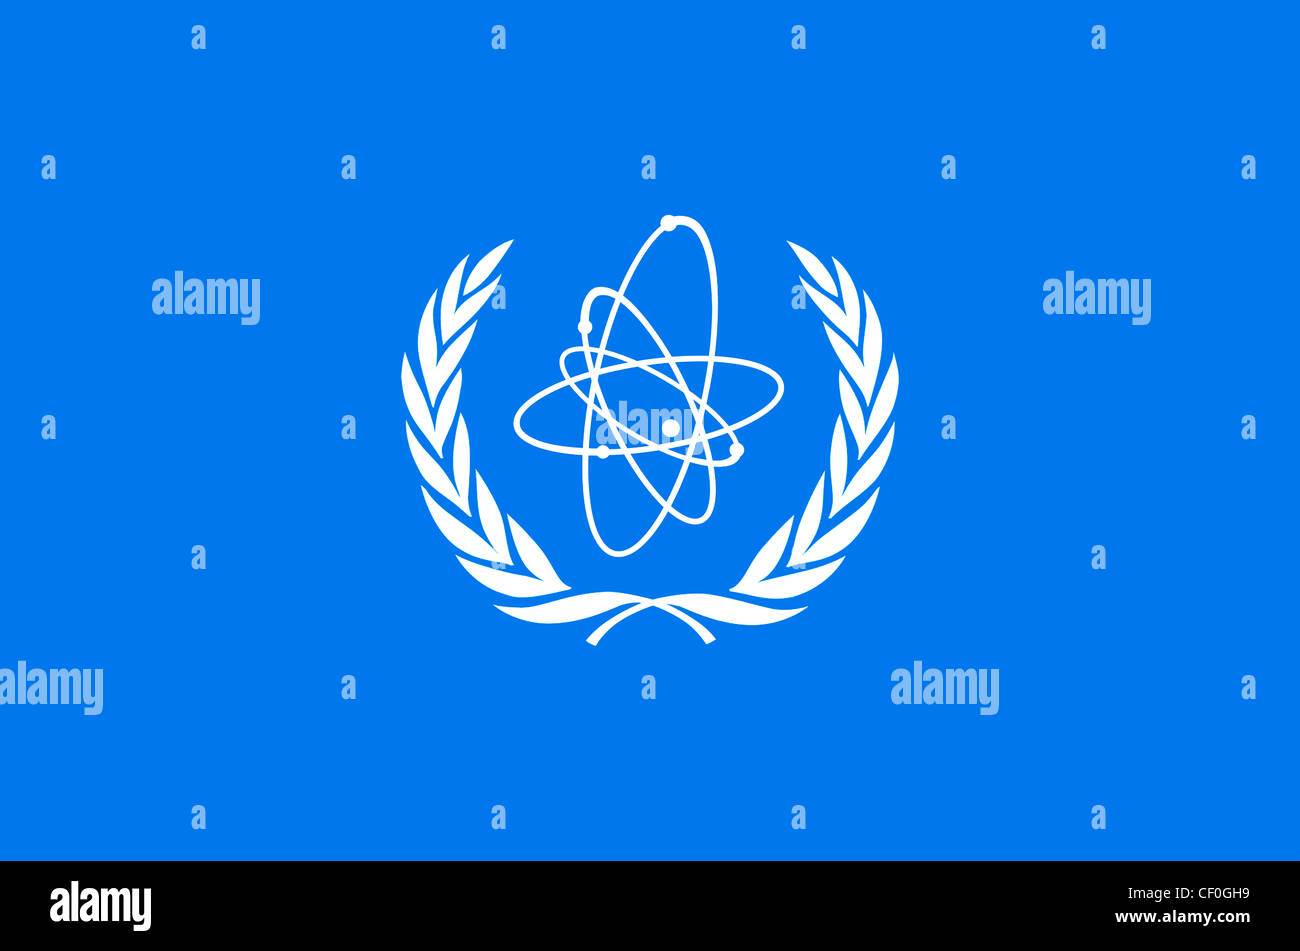 Flag of the International Atomic Energy Agency IAEA with the coat of arms of the organisation based in Vienna. Stock Photo